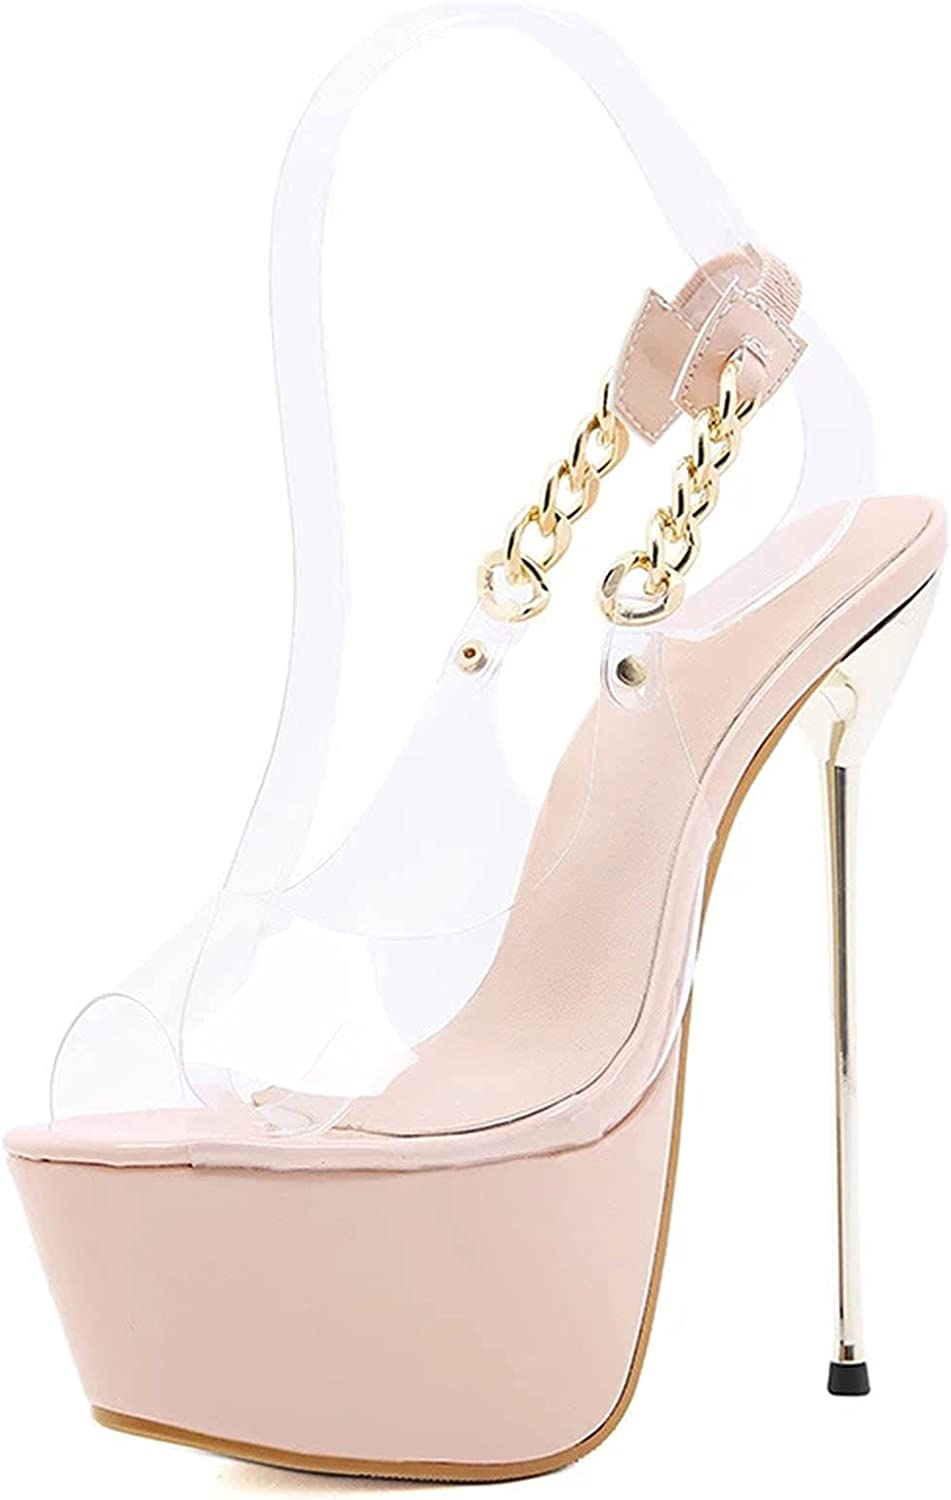 BeAUZQ Women's Cheap mail order sales Open Toe Platform Fash Summer Clear Pumps Sandals SEAL limited product